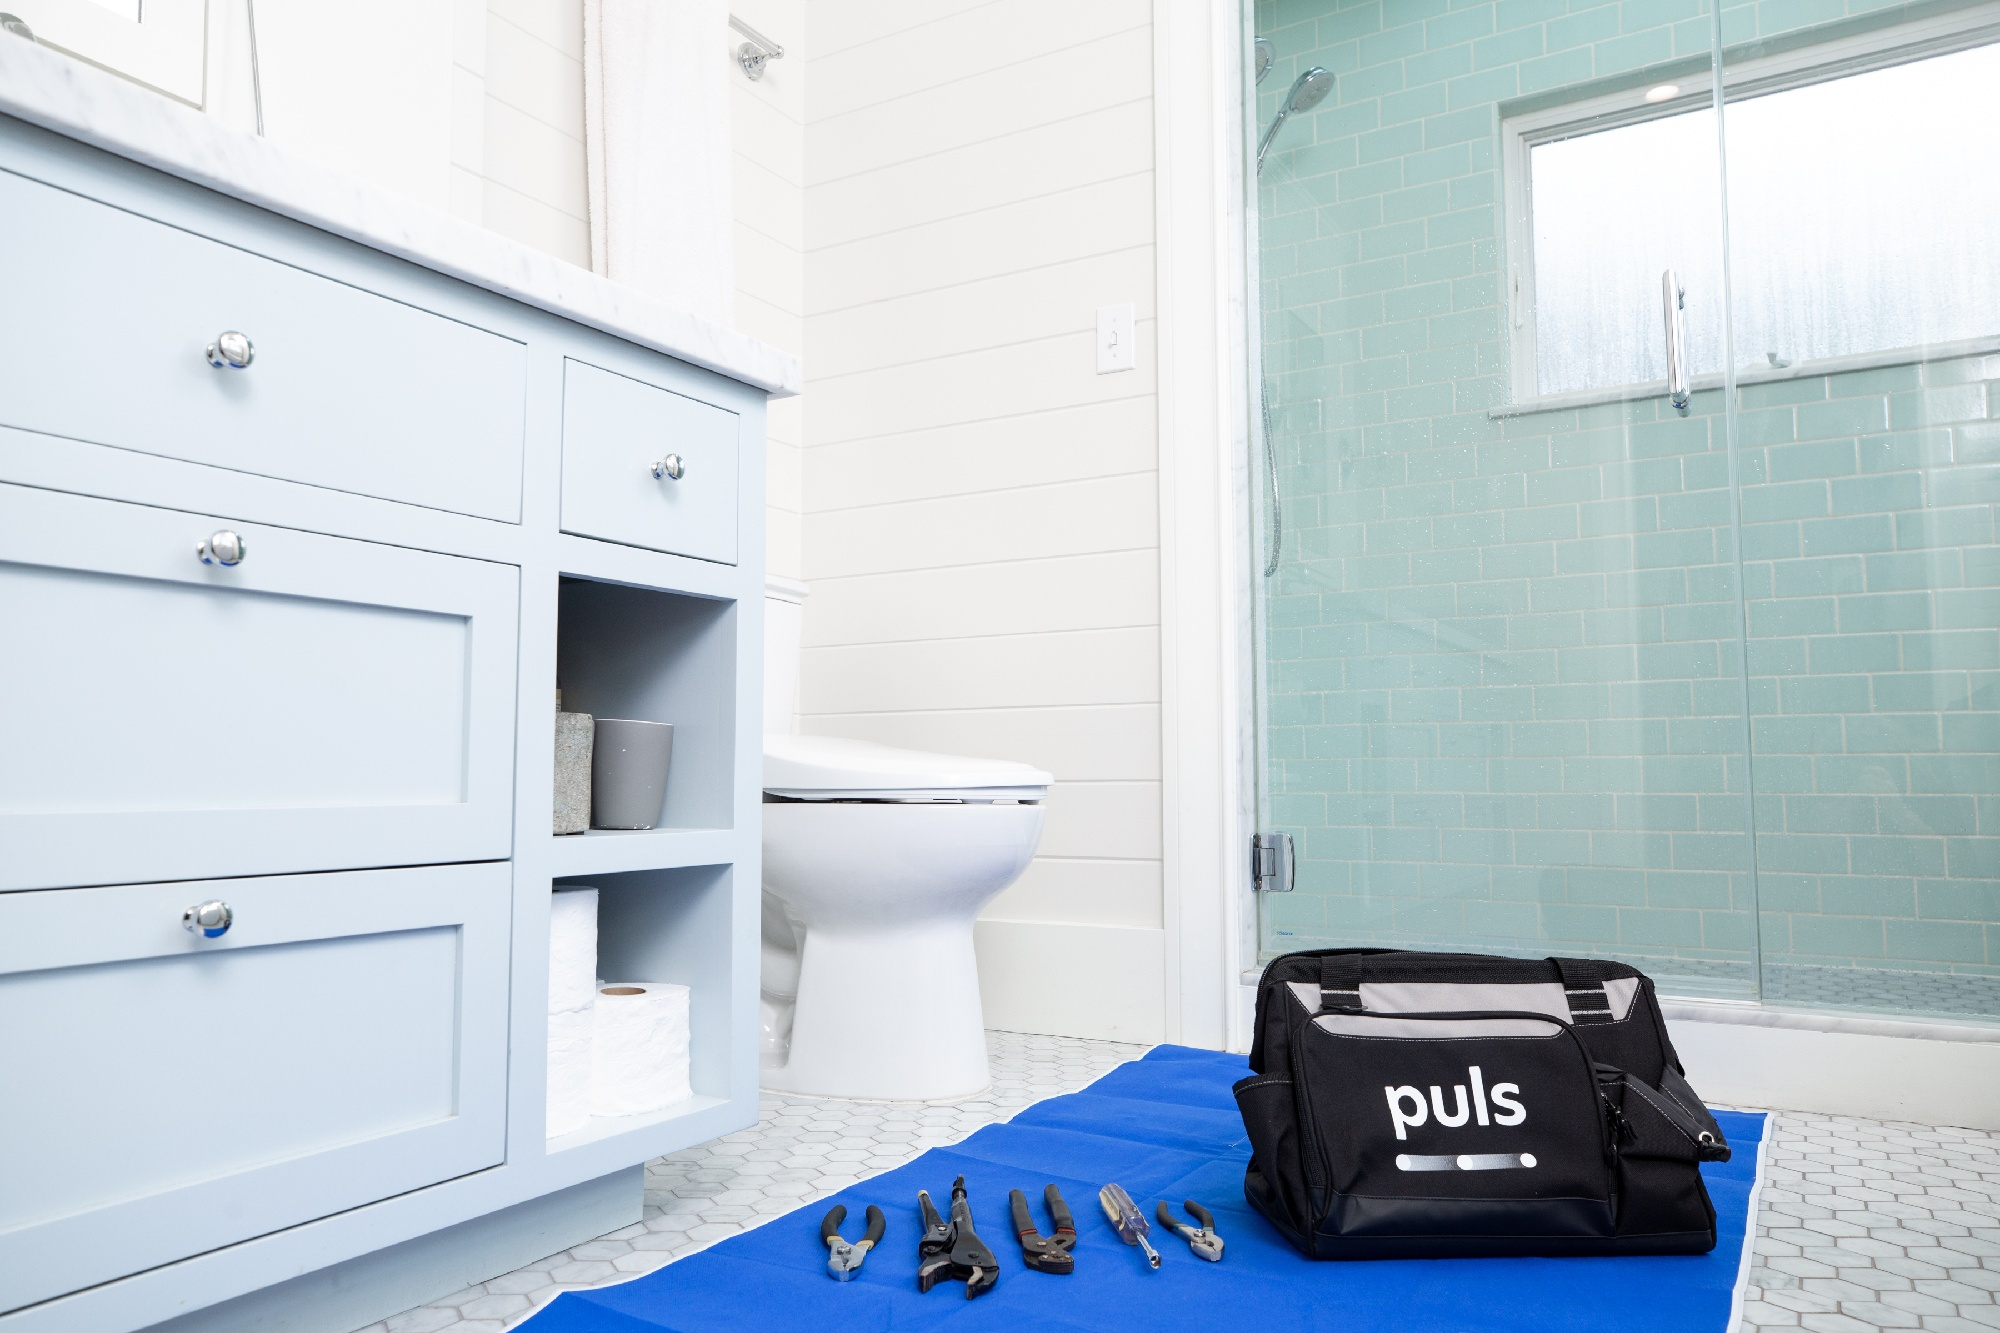 toilet replacement Puls